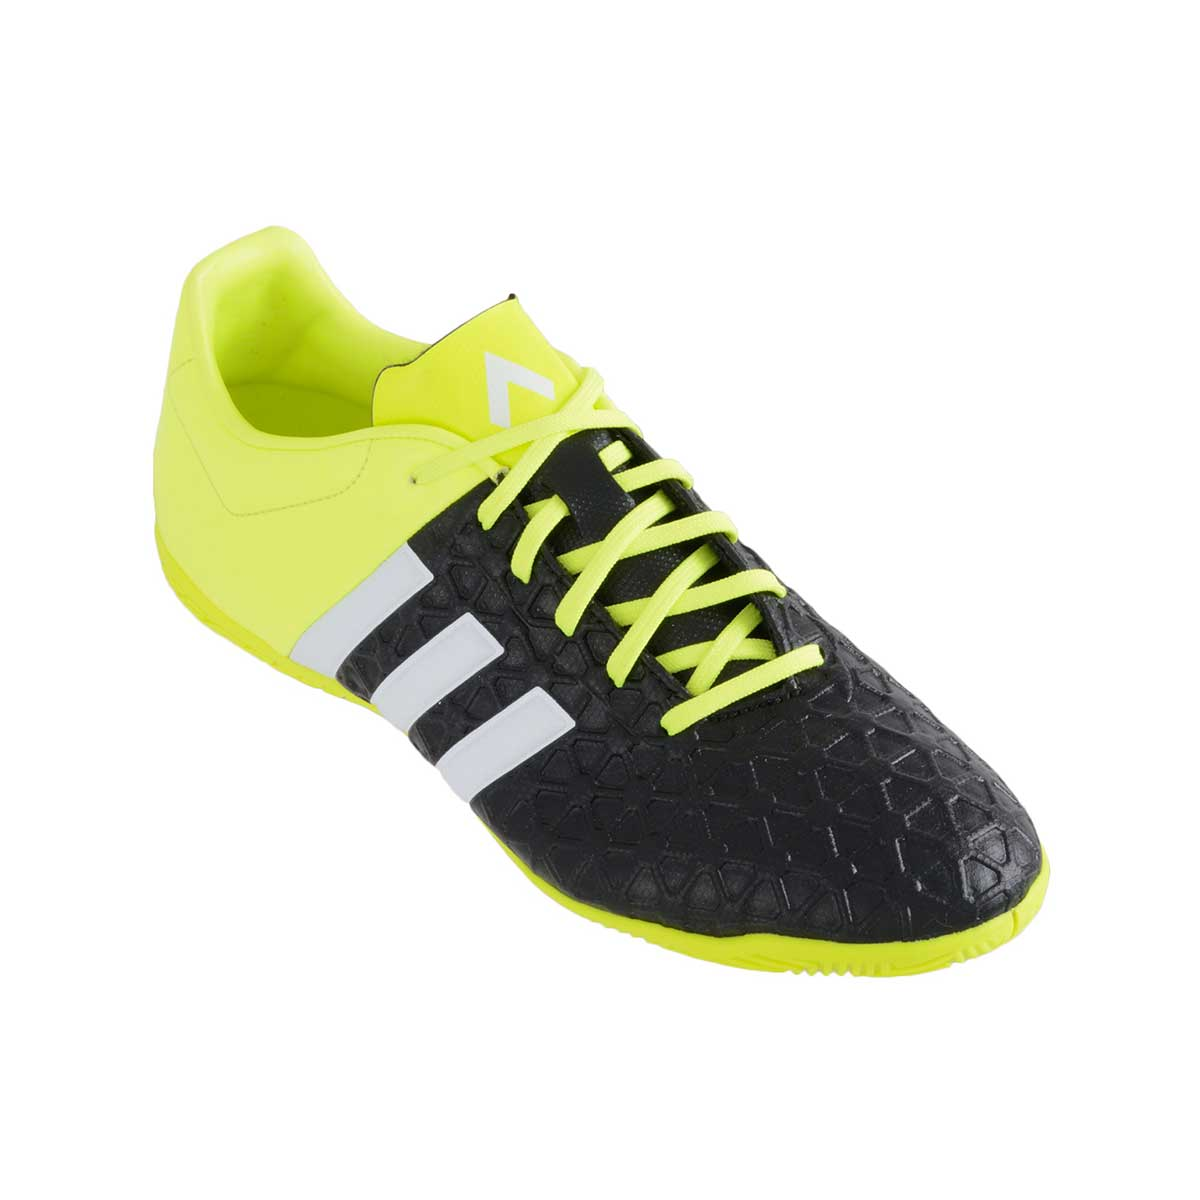 adidas football shoes online shopping